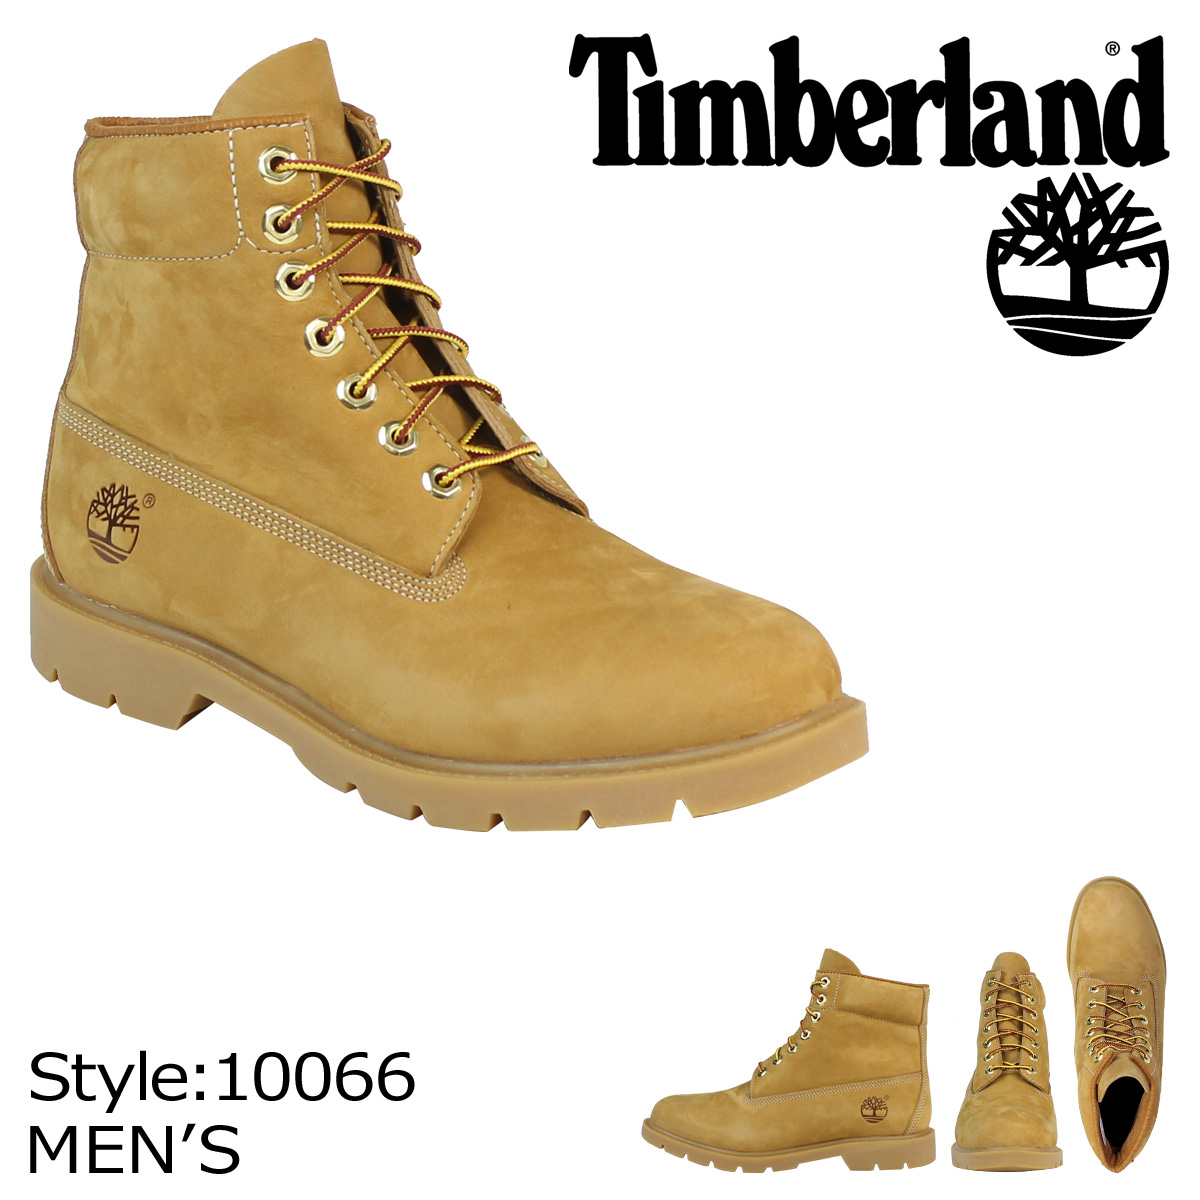 bed47c55a3a Timberland Timberland 6INCH 6 inches premium boots men BASIC WATERPROOF  BOOT 10,066W ワイズウィート